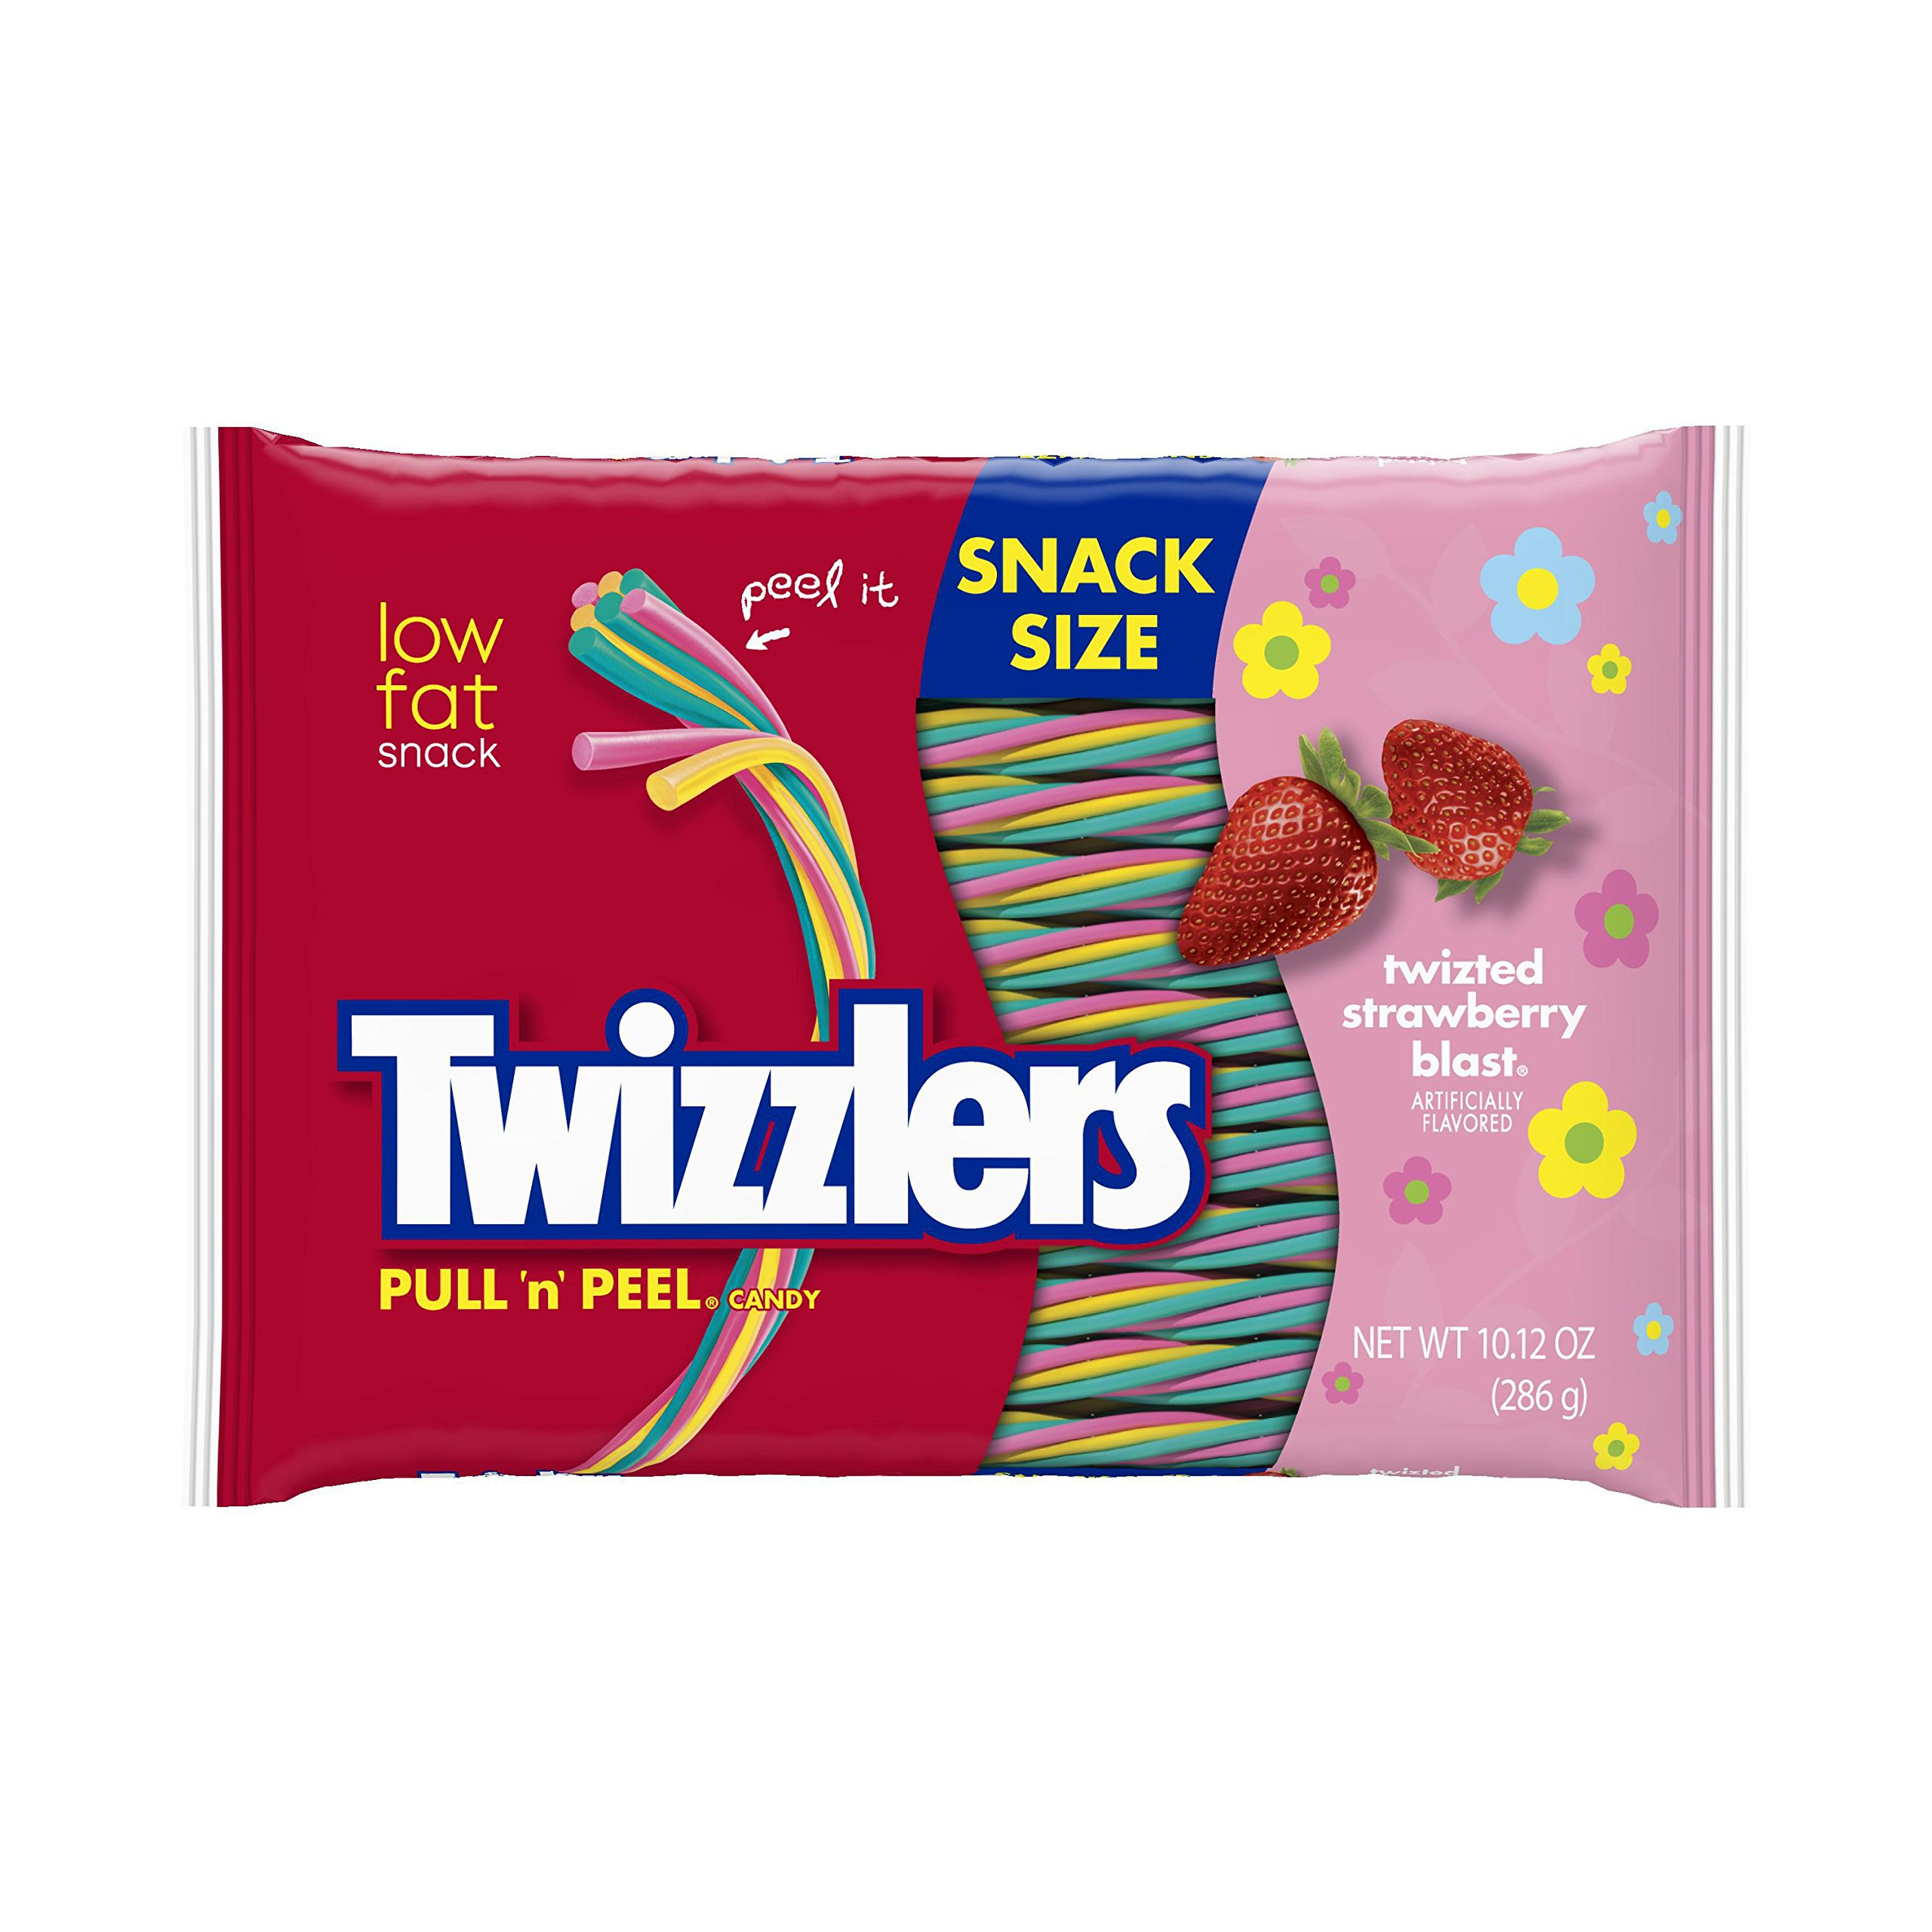 TWIZZLERS PULL 'N' PEEL Easter Snack Size Candy, TWIZTED Strawberry Blast Flavored , 10.12 Ounce Bag (Pack of 6)